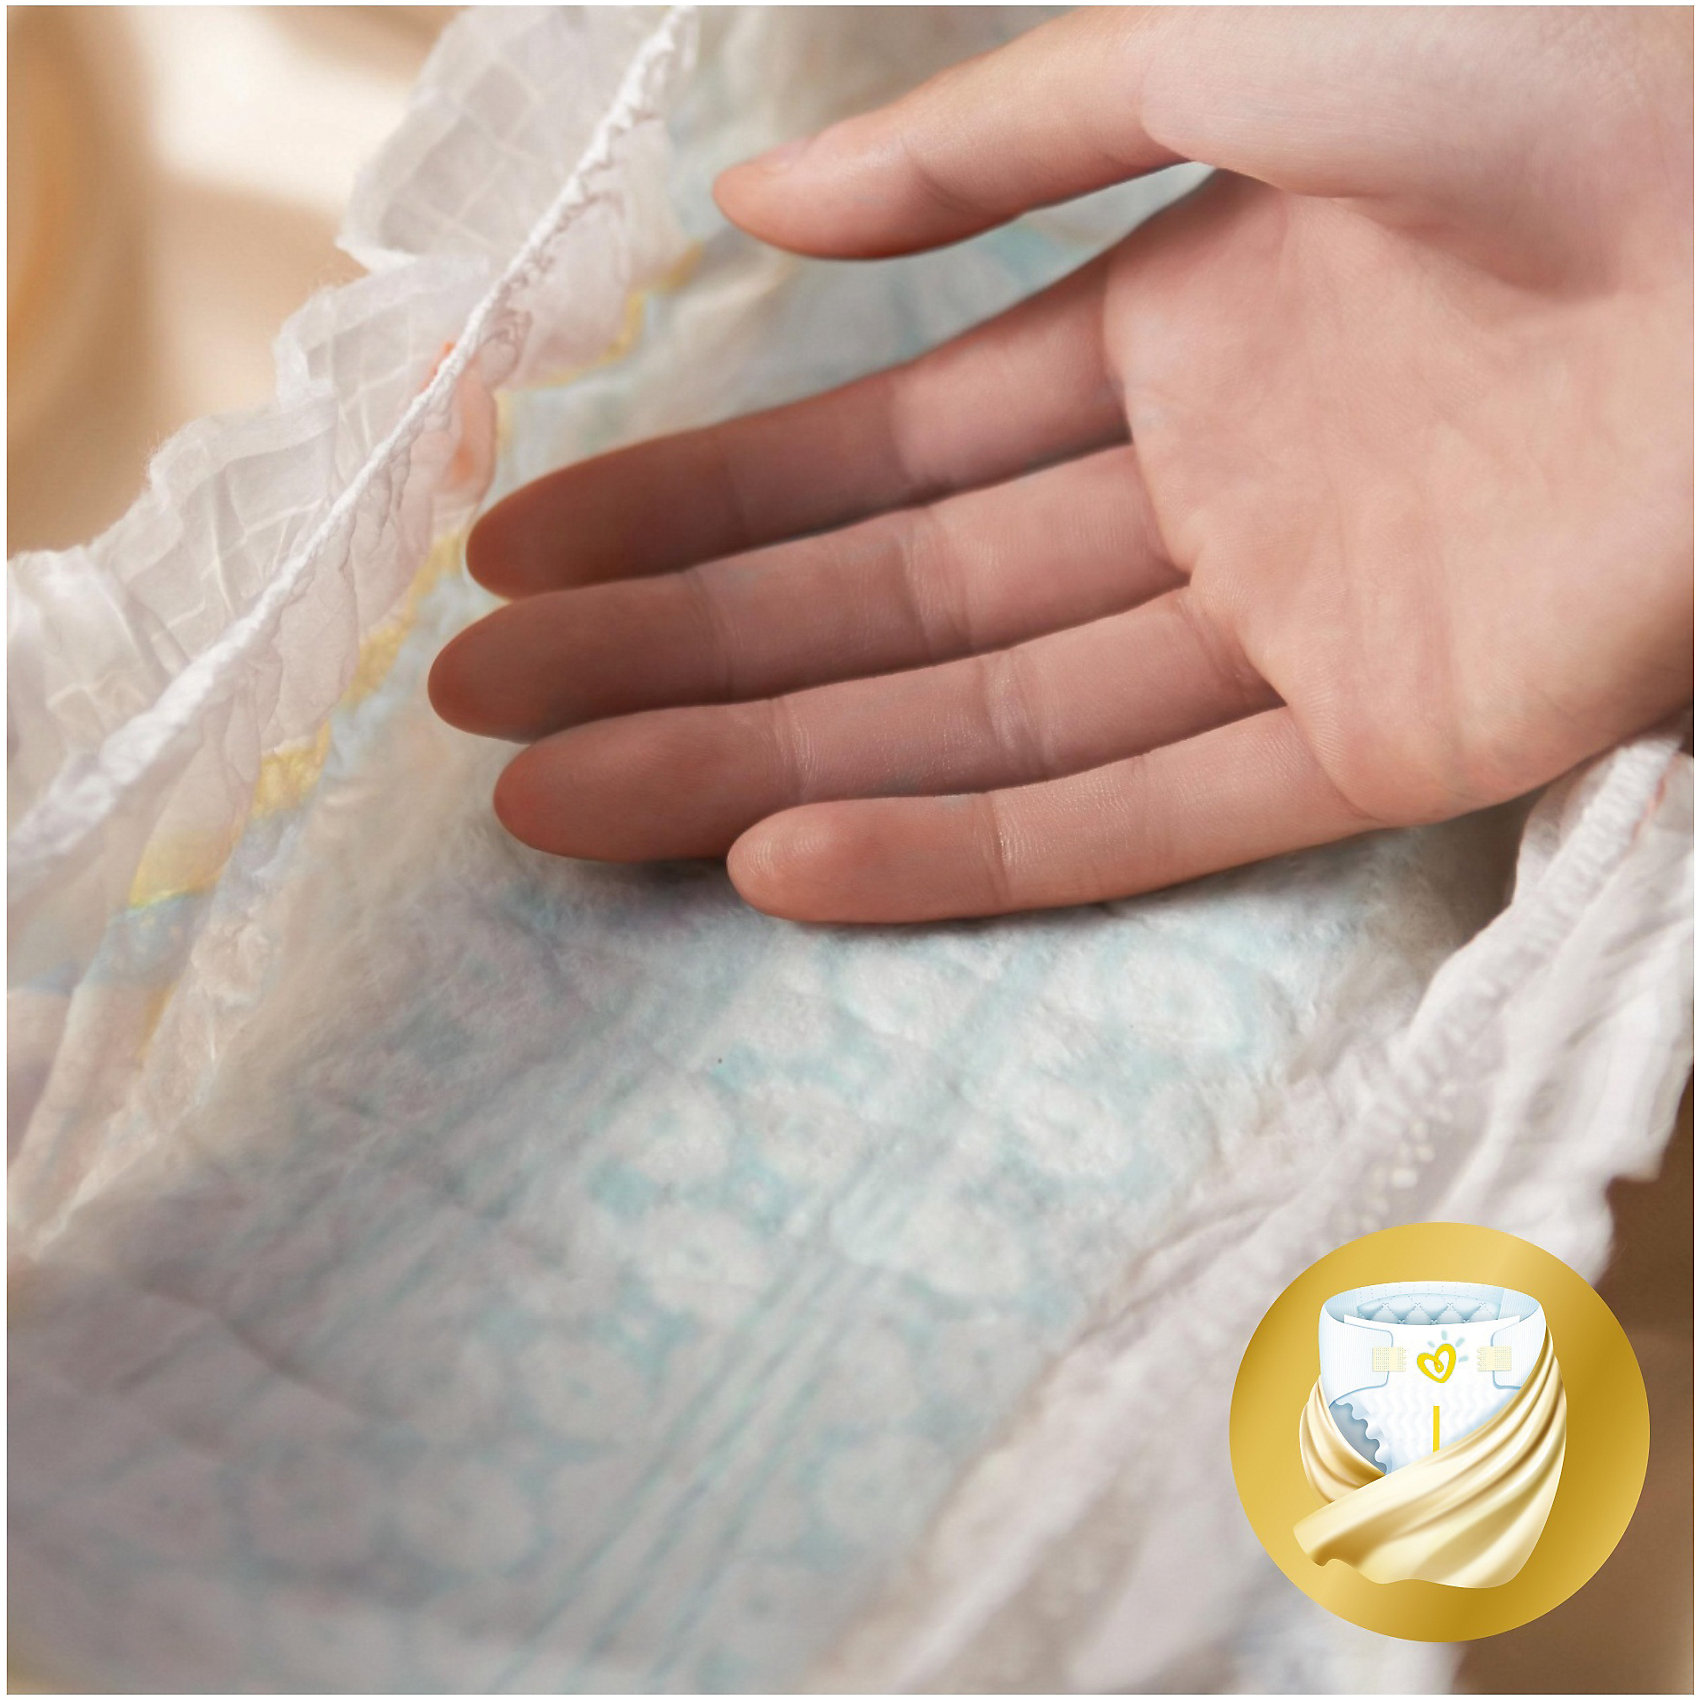 Подгузники Pampers Premium Care, 11-18 кг, 5 размер, 18 шт., Pampers